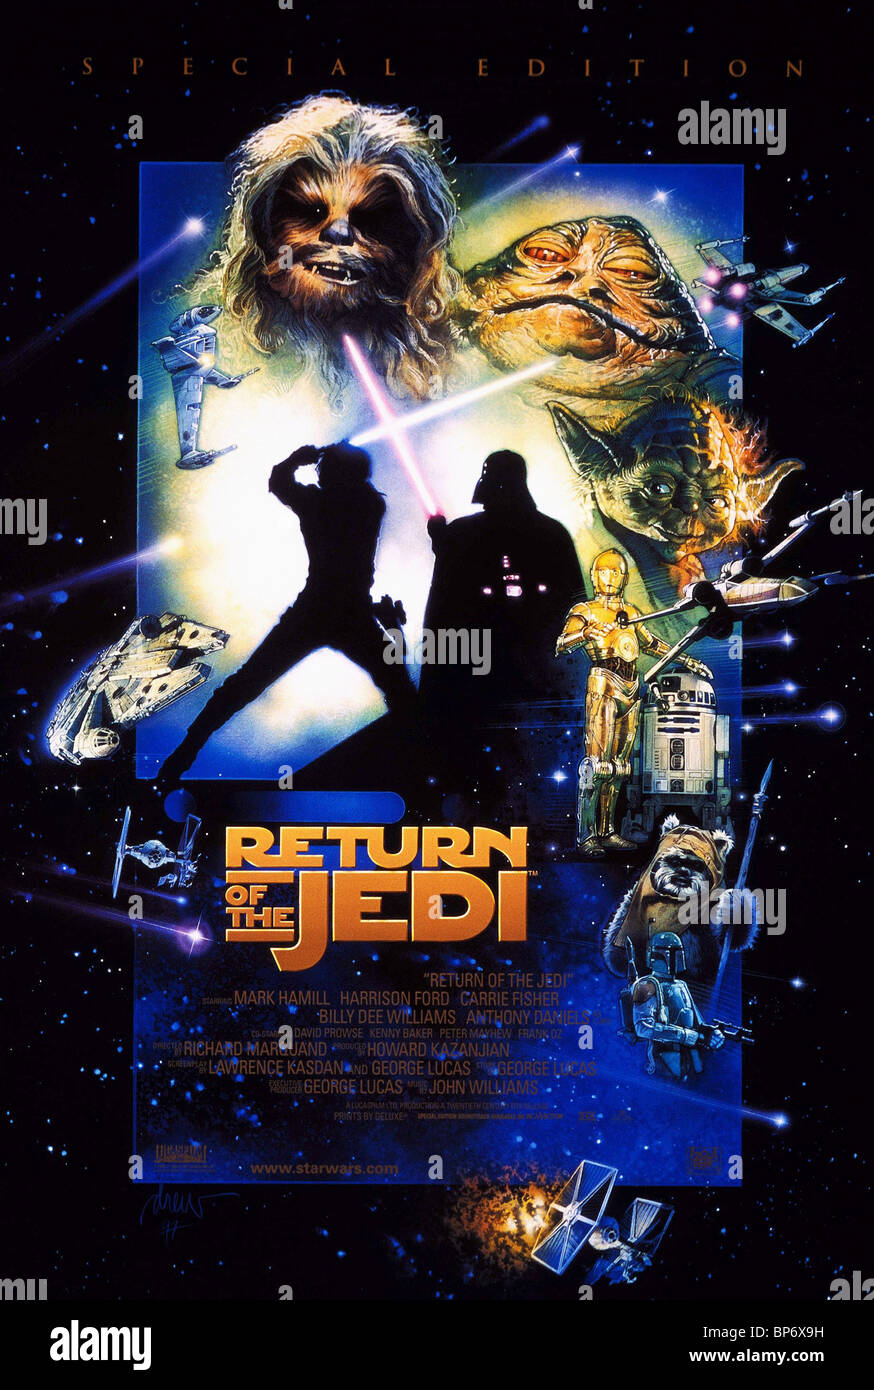 MOVIE POSTER STAR WARS: RETURN OF THE JEDI; STAR WARS ...